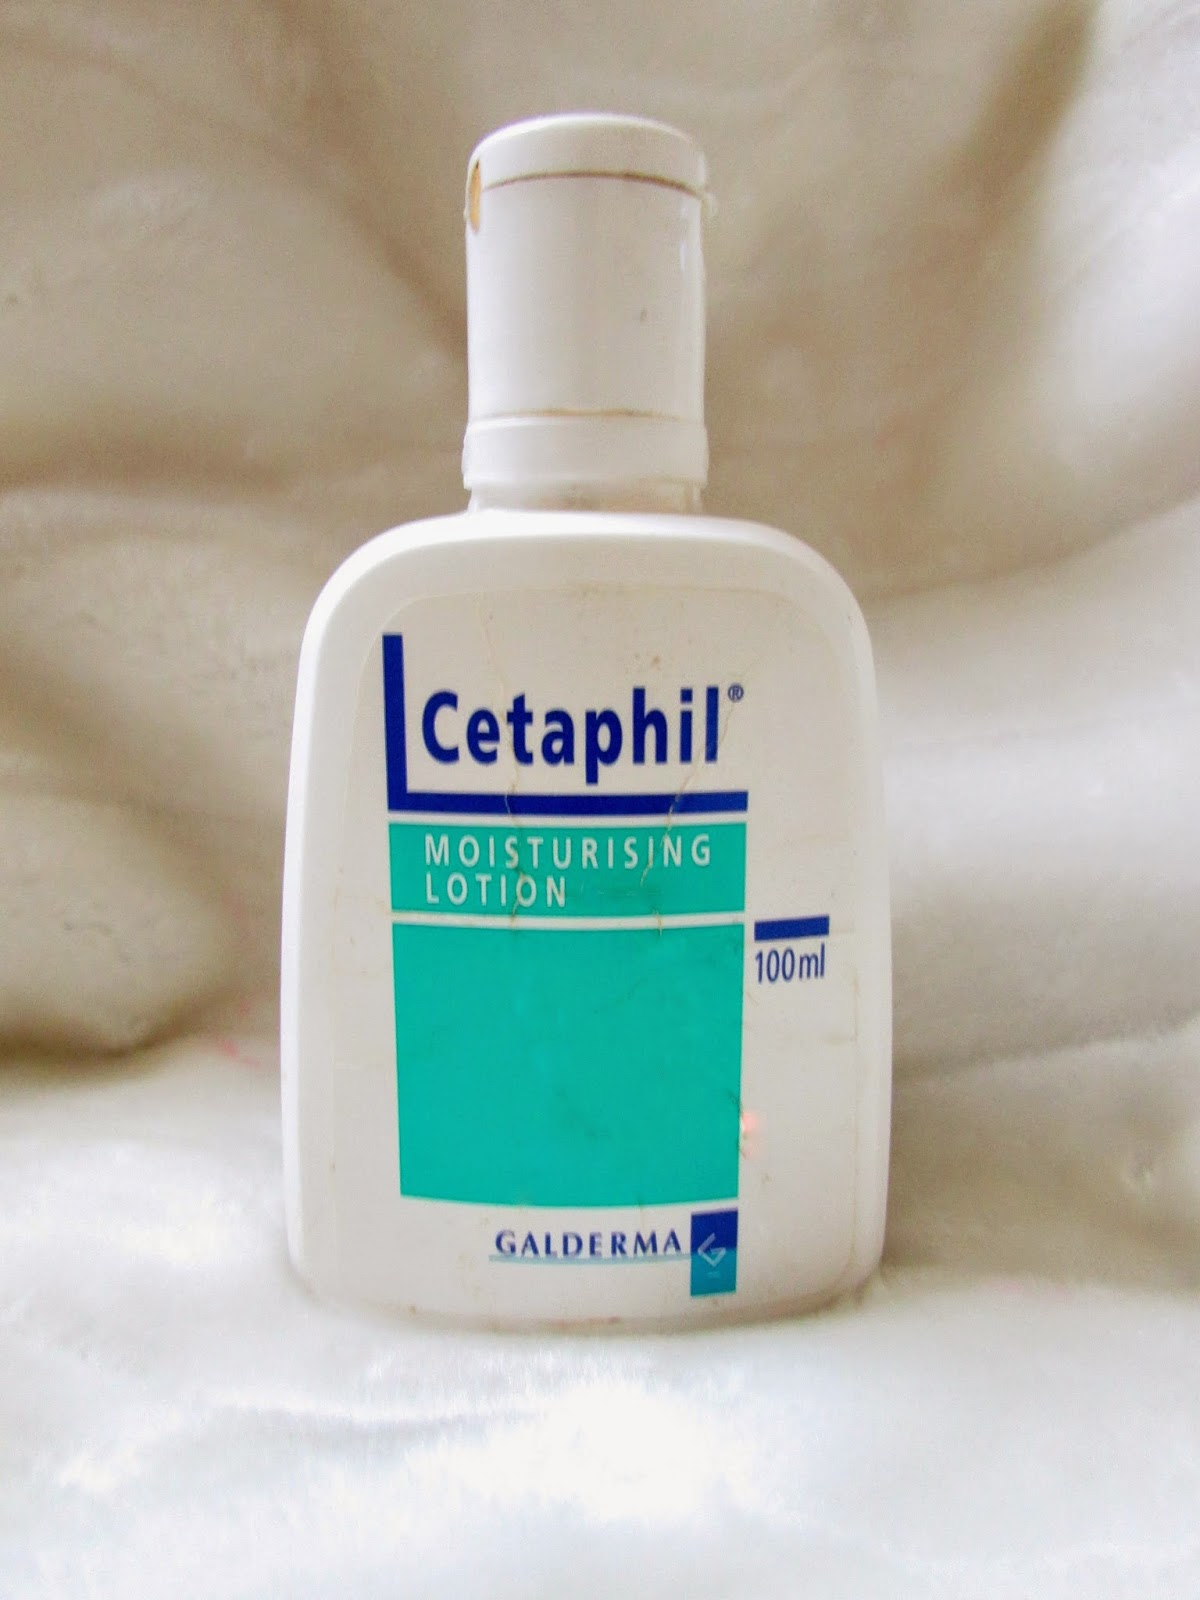 Cetaphil , cetaphil moisturiser, cetaphil moisturising lotion, cetaphil lotion, cetaphil face lotion, cataphil moisturising cream, cetaphil cream, Cetaphil india, cetaphil moisturiser india, cetaphil moisturising lotion india, cetaphil lotion india, cetaphil face lotion india,cetaphil moisturising cream india,  cetaphil cream india, Cetaphil review, cetaphil moisturiser review, cetaphil moisturising lotion review, cetaphil lotion india, cetaphil face lotion review, catapult moisturising cream review,  cetaphil cream review, Cetaphil  price, cetaphil moisturiser price, cetaphil moisturising lotion price, cetaphil lotion india, cetaphil face lotion price, catapult moisturising cream price,  cetaphil cream price, Cetaphil review india, cetaphil moisturiser review india, cetaphil moisturising lotion review india, cetaphil lotion review india, cetaphil face lotion review india, cataphil moisturising cream review india,  cetaphil cream review india, Cetaphil price india, cetaphil moisturiser price india, cetaphil moisturising lotion price india, cetaphil lotion price india, cetaphil face lotion price india,cetaphil  moisturising cream price india,  cetaphil cream price india, Cetaphil price and review, cetaphil moisturiser price and review, cetaphil moisturising lotion price and review, cetaphil lotion, cetaphil face lotion price and review, cataphil moisturising cream price and review, best moisturiser for dry skin, worst moisturiser for oily skin, worst moisturiser for acne prone skin,